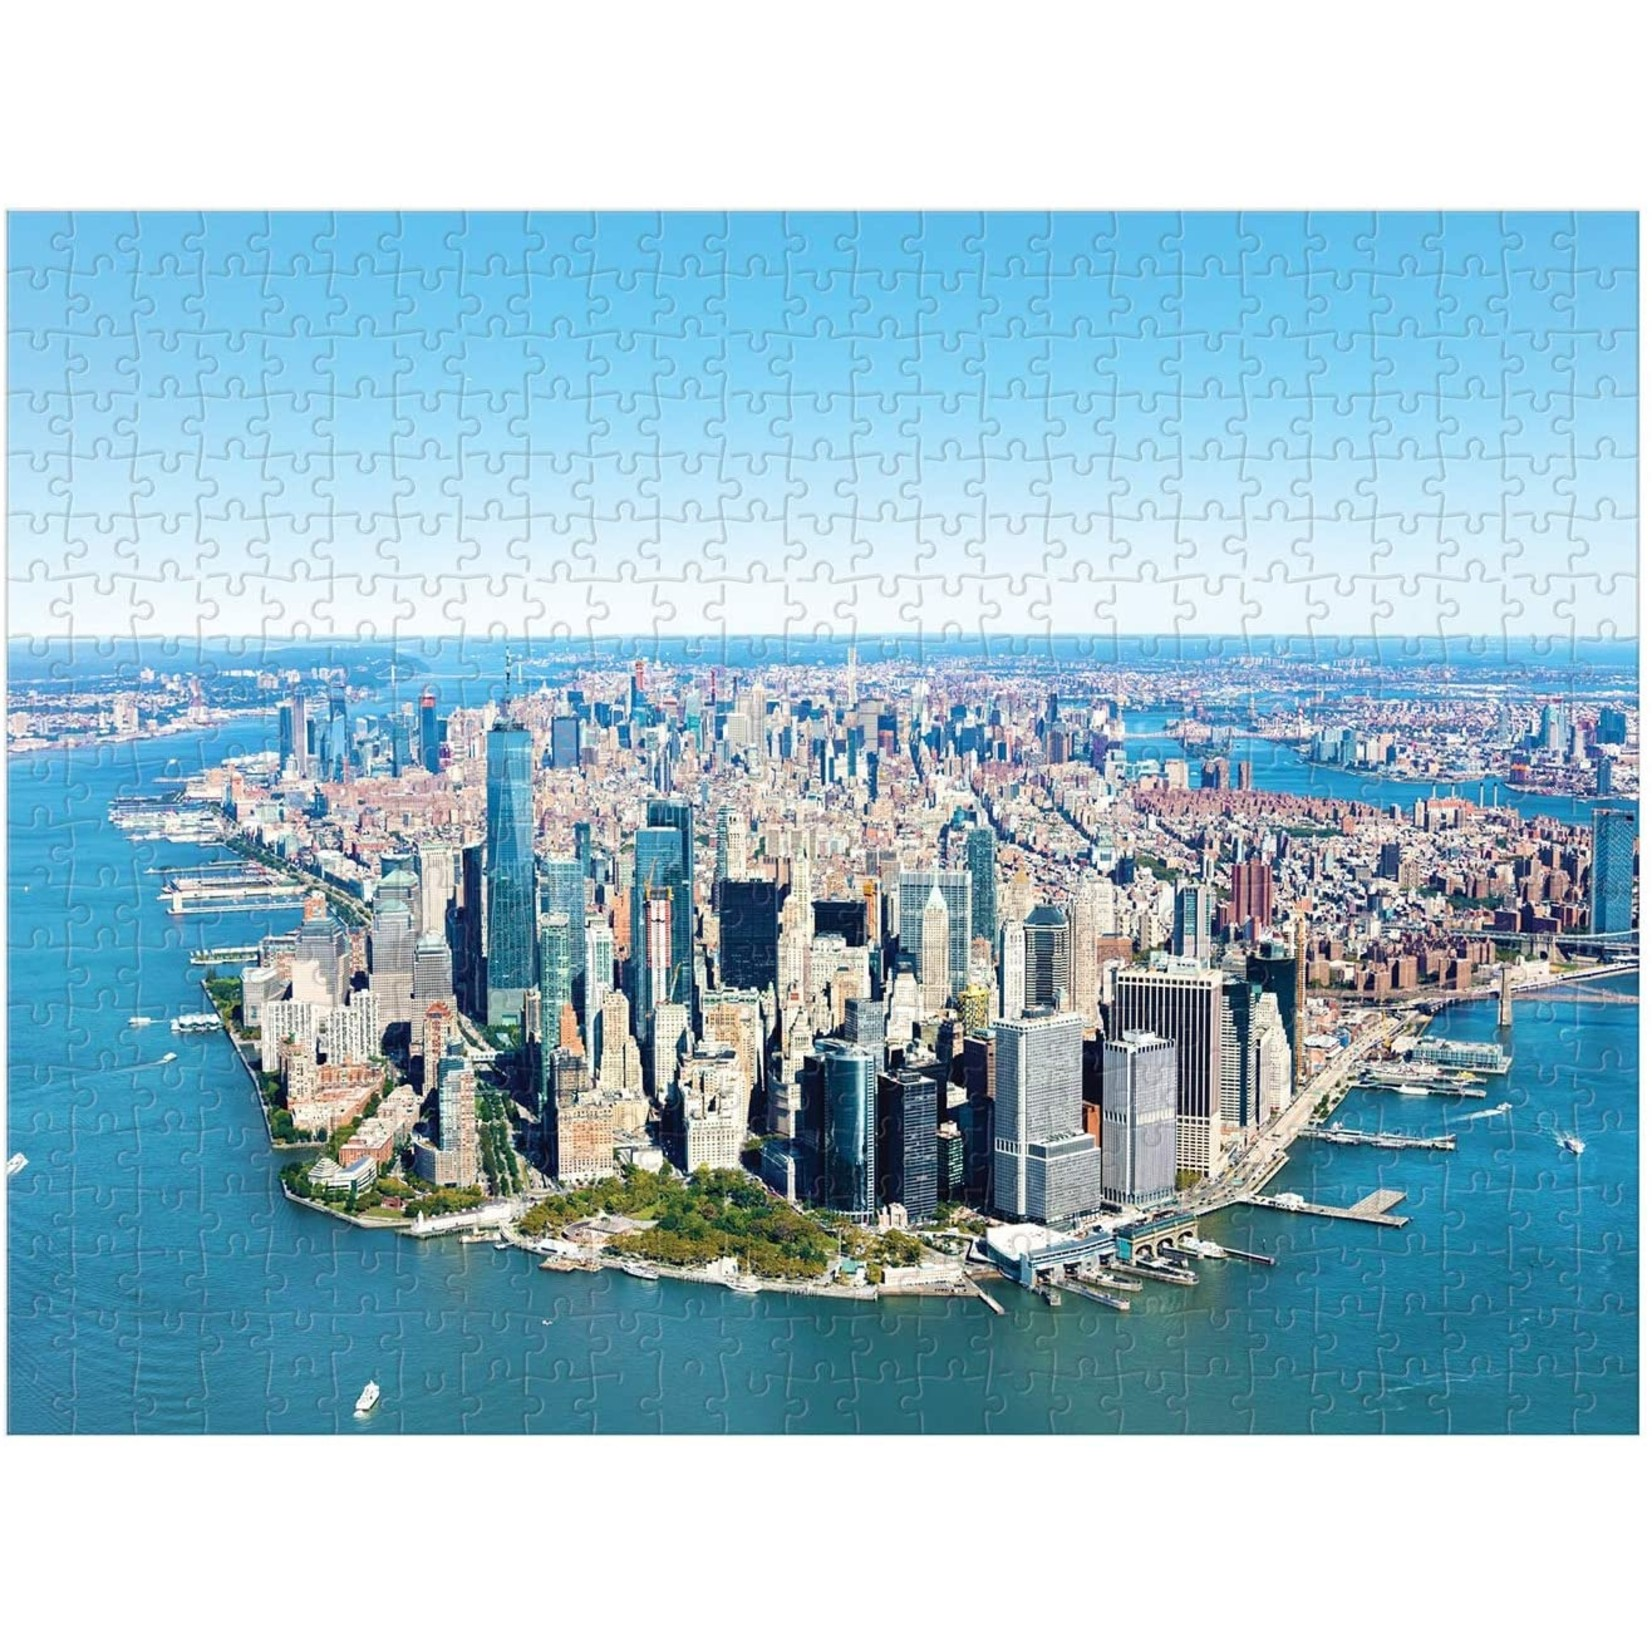 Chronicle Books NYC Photographs Two-Sided Puzzle